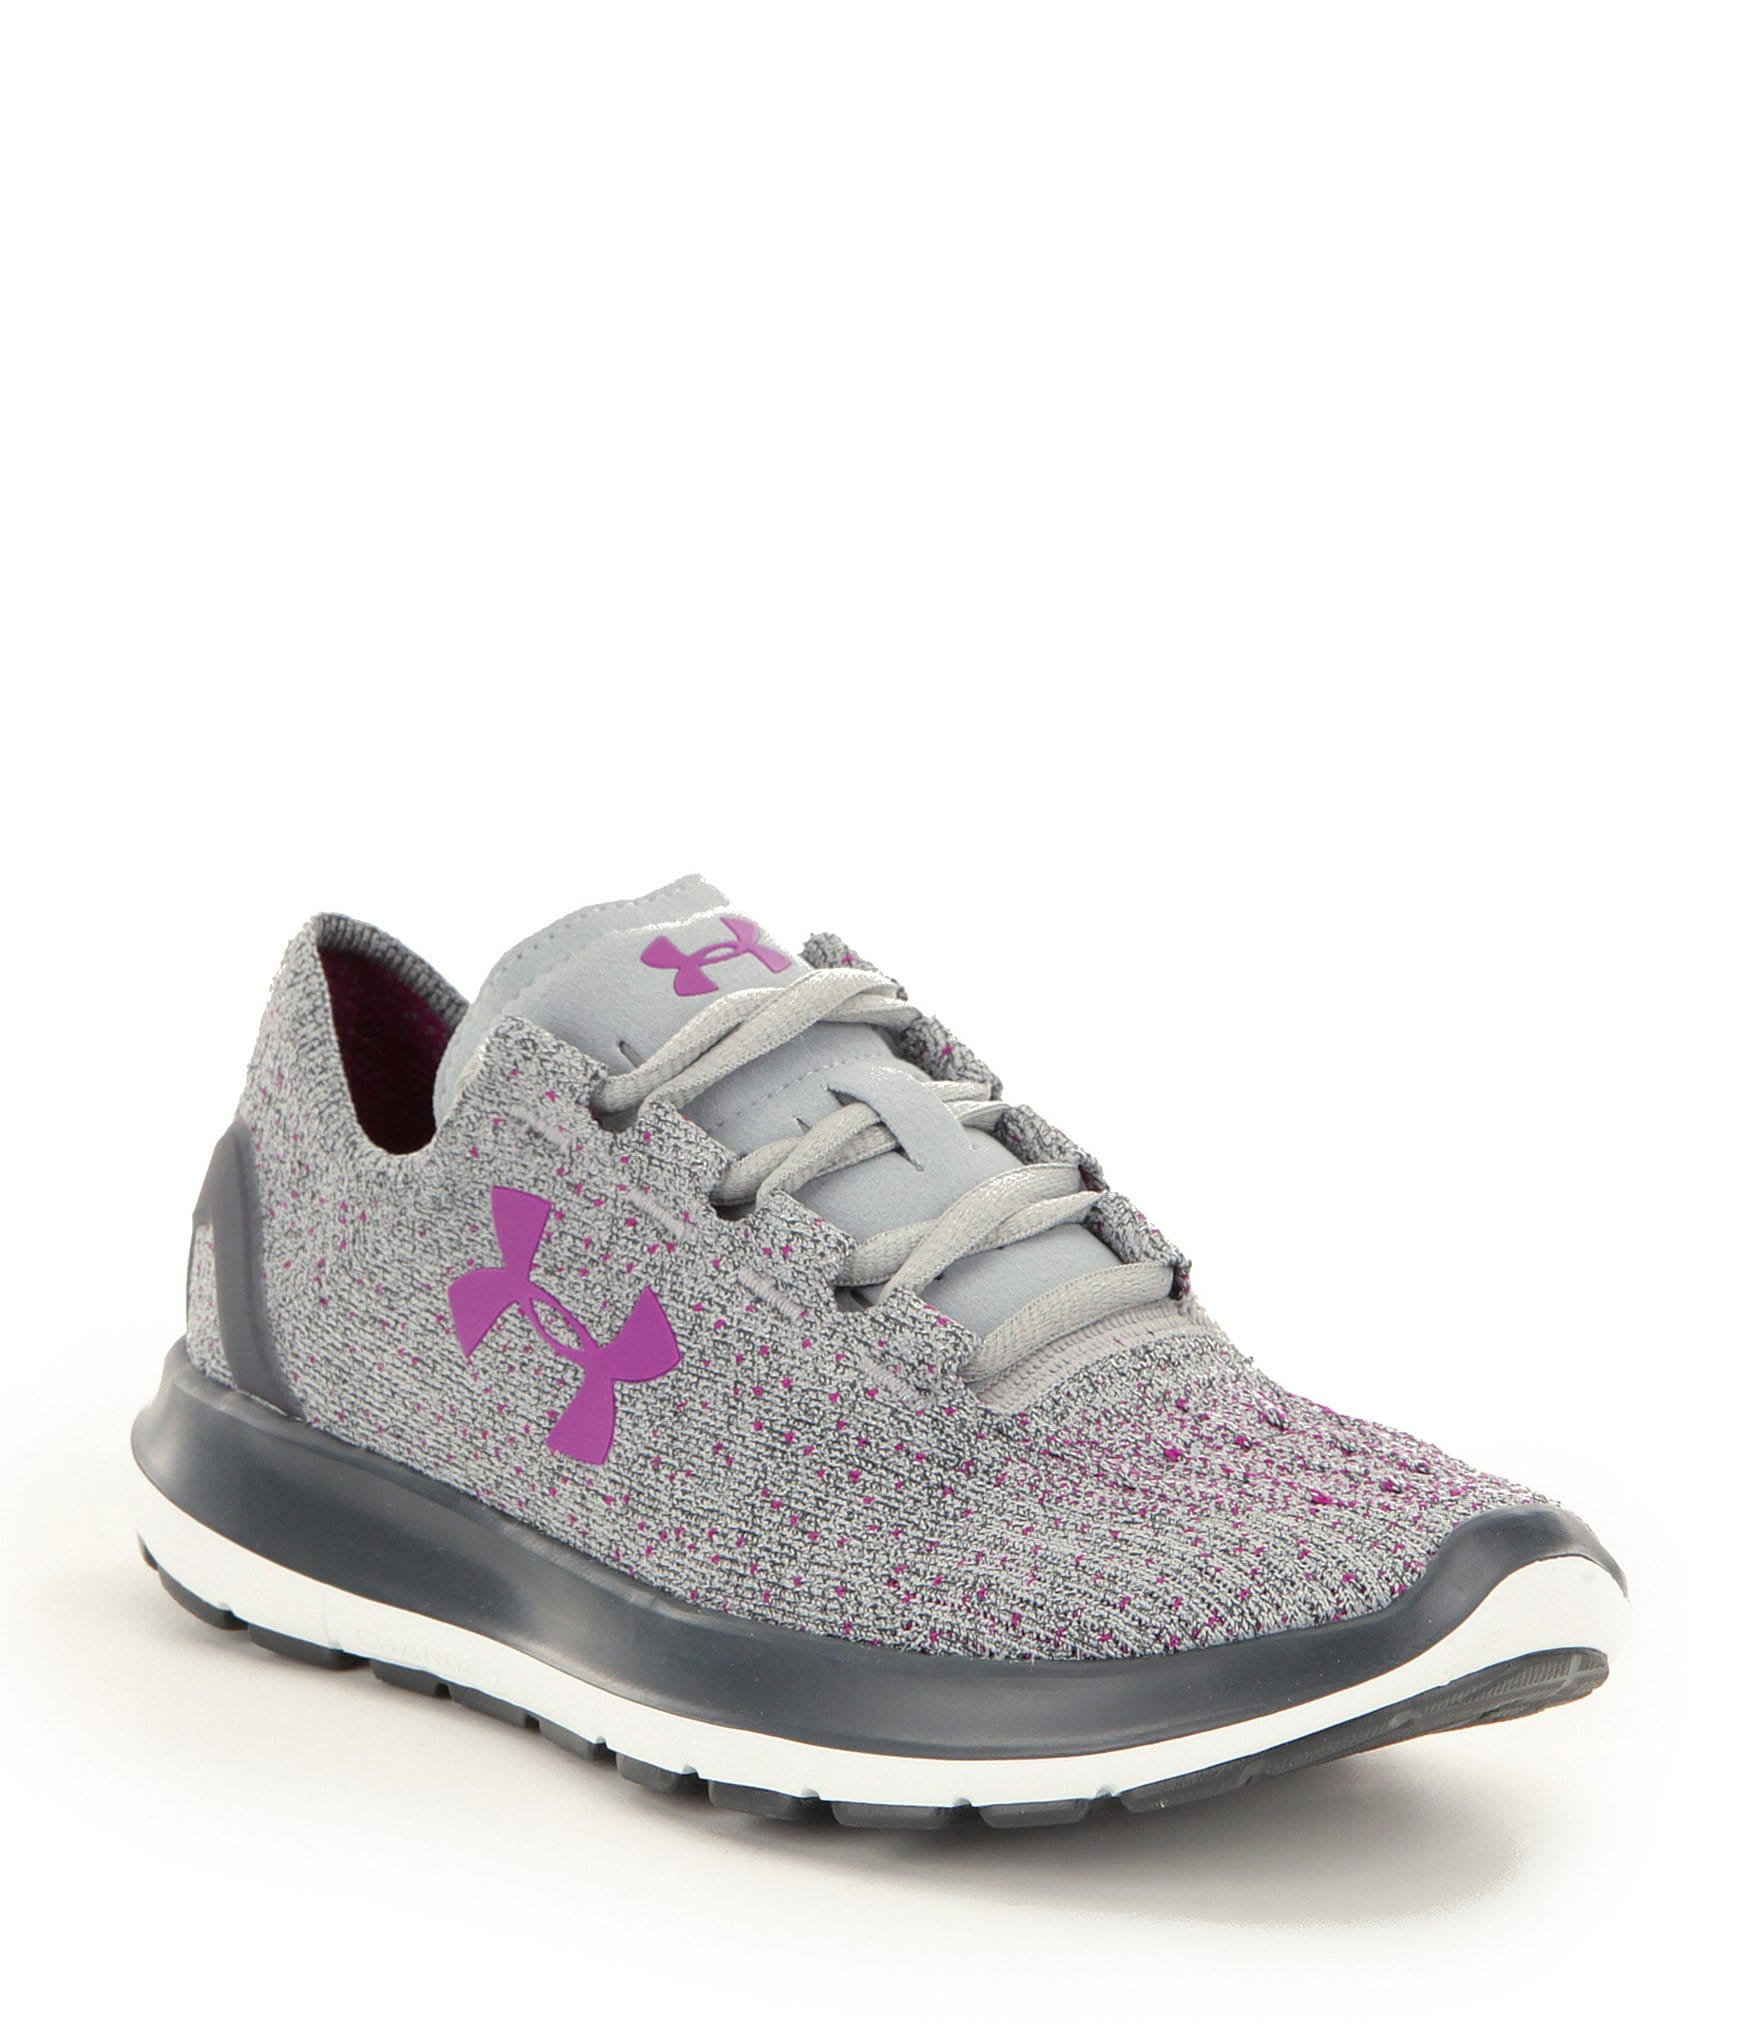 under armour womens running shoes. under armour womens running shoes 6